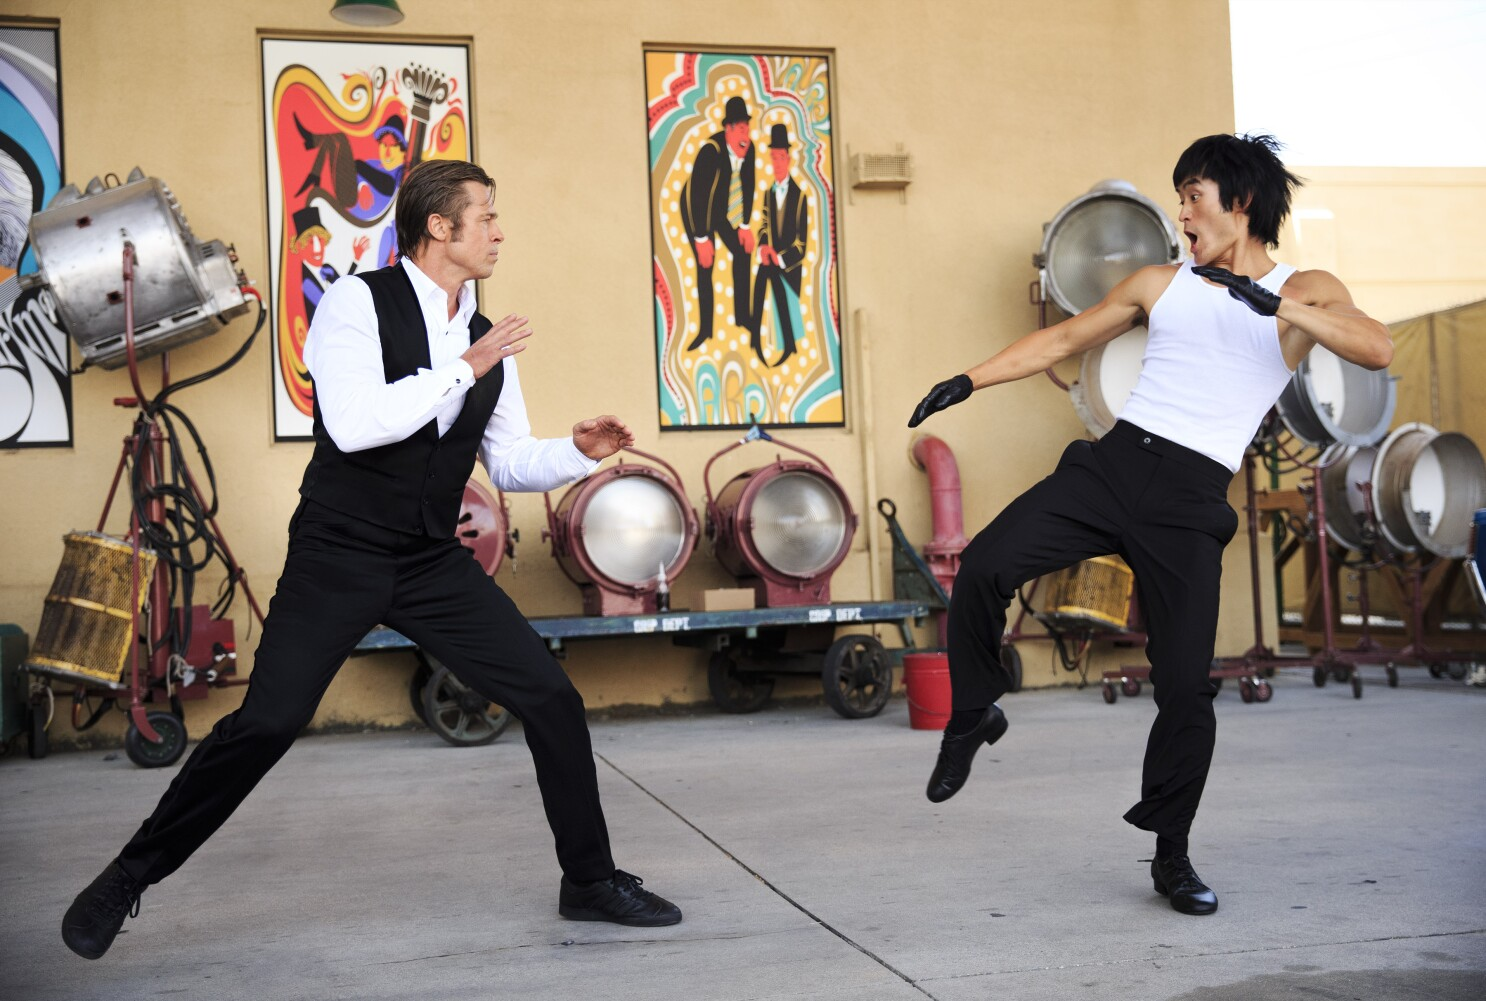 Why 'Once Upon a Time's' Bruce Lee cameo is problematic - Los ...